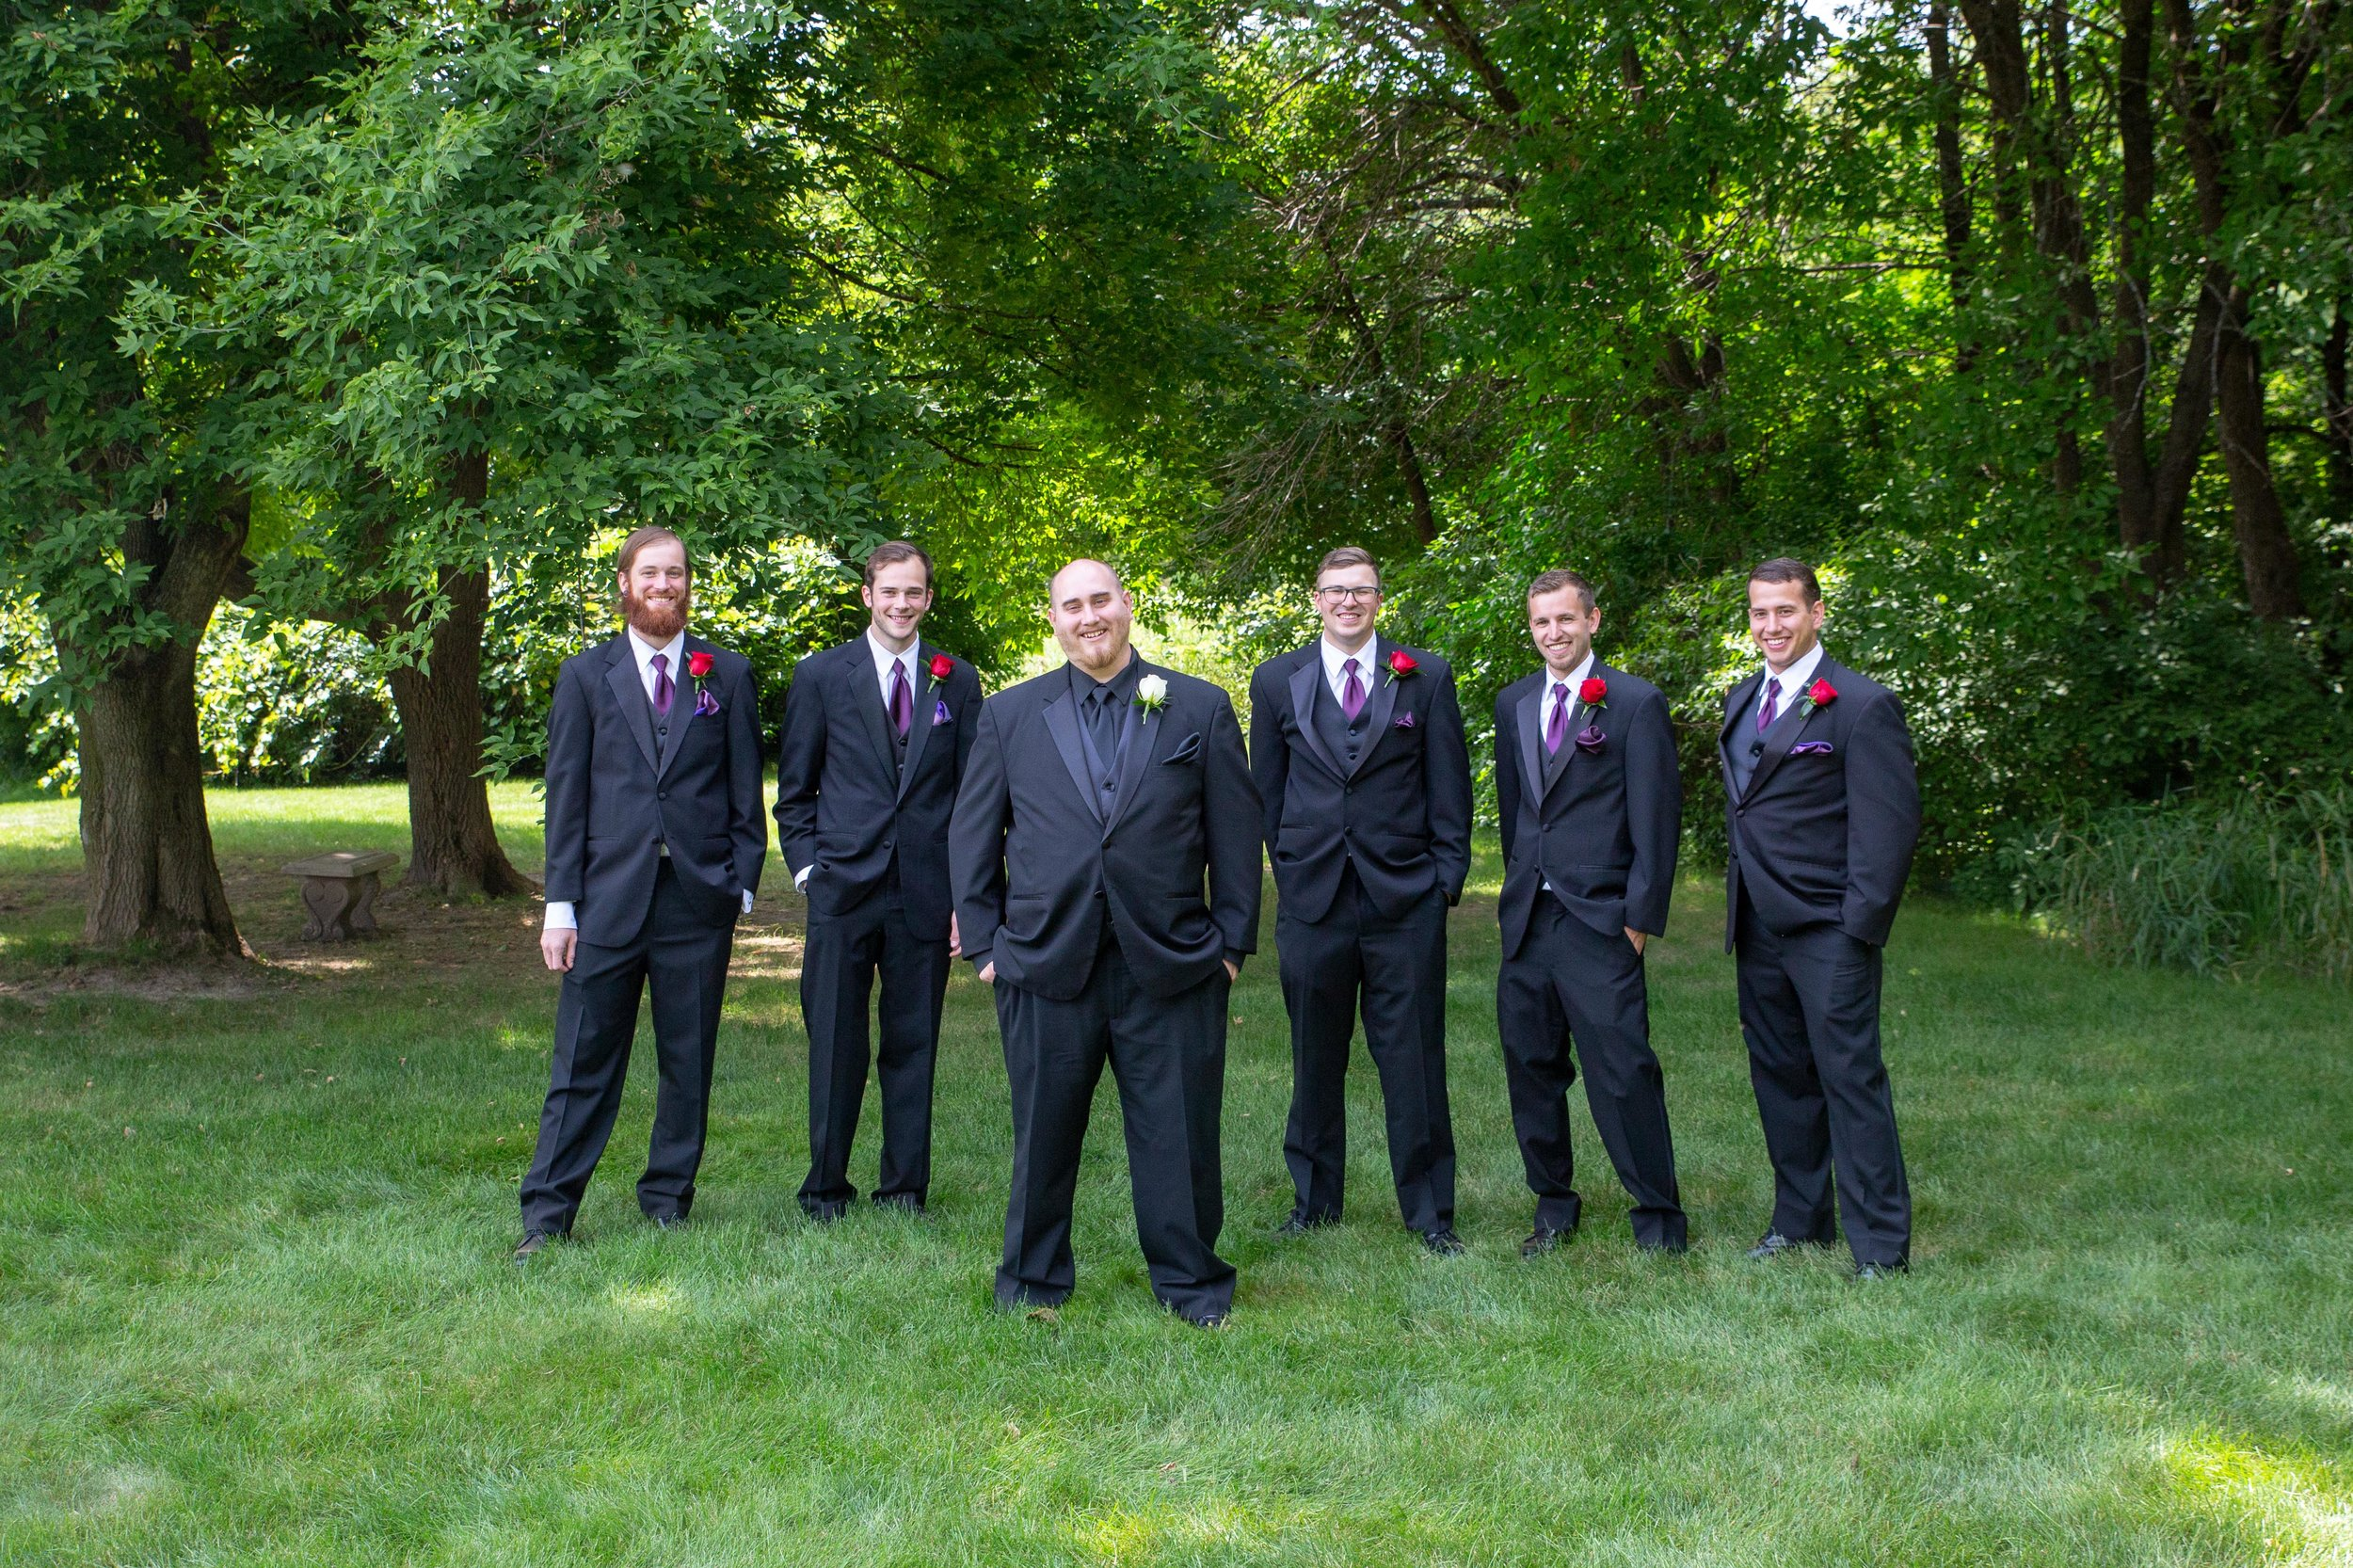 Cindyrella's Garden, Fab Weddings, outdoor Minnesota ceremony, Rosemount wedding, south metro, groomsmen photo